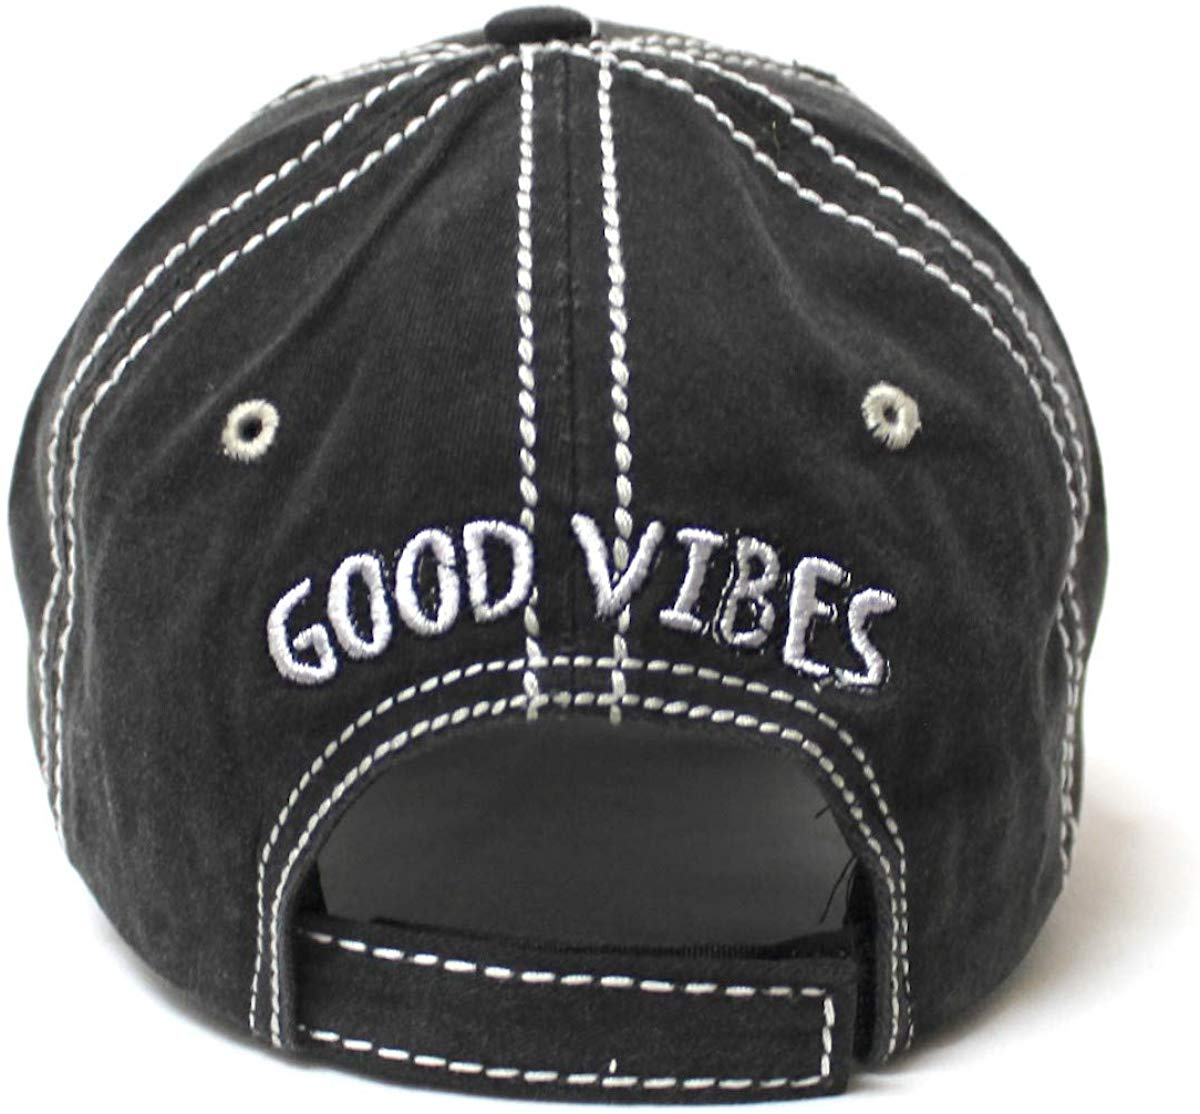 Leopard Print Good Vibes Monogram Patch Embroidery, Adjustable Baseball Hat, Vintage Black - Caps 'N Vintage